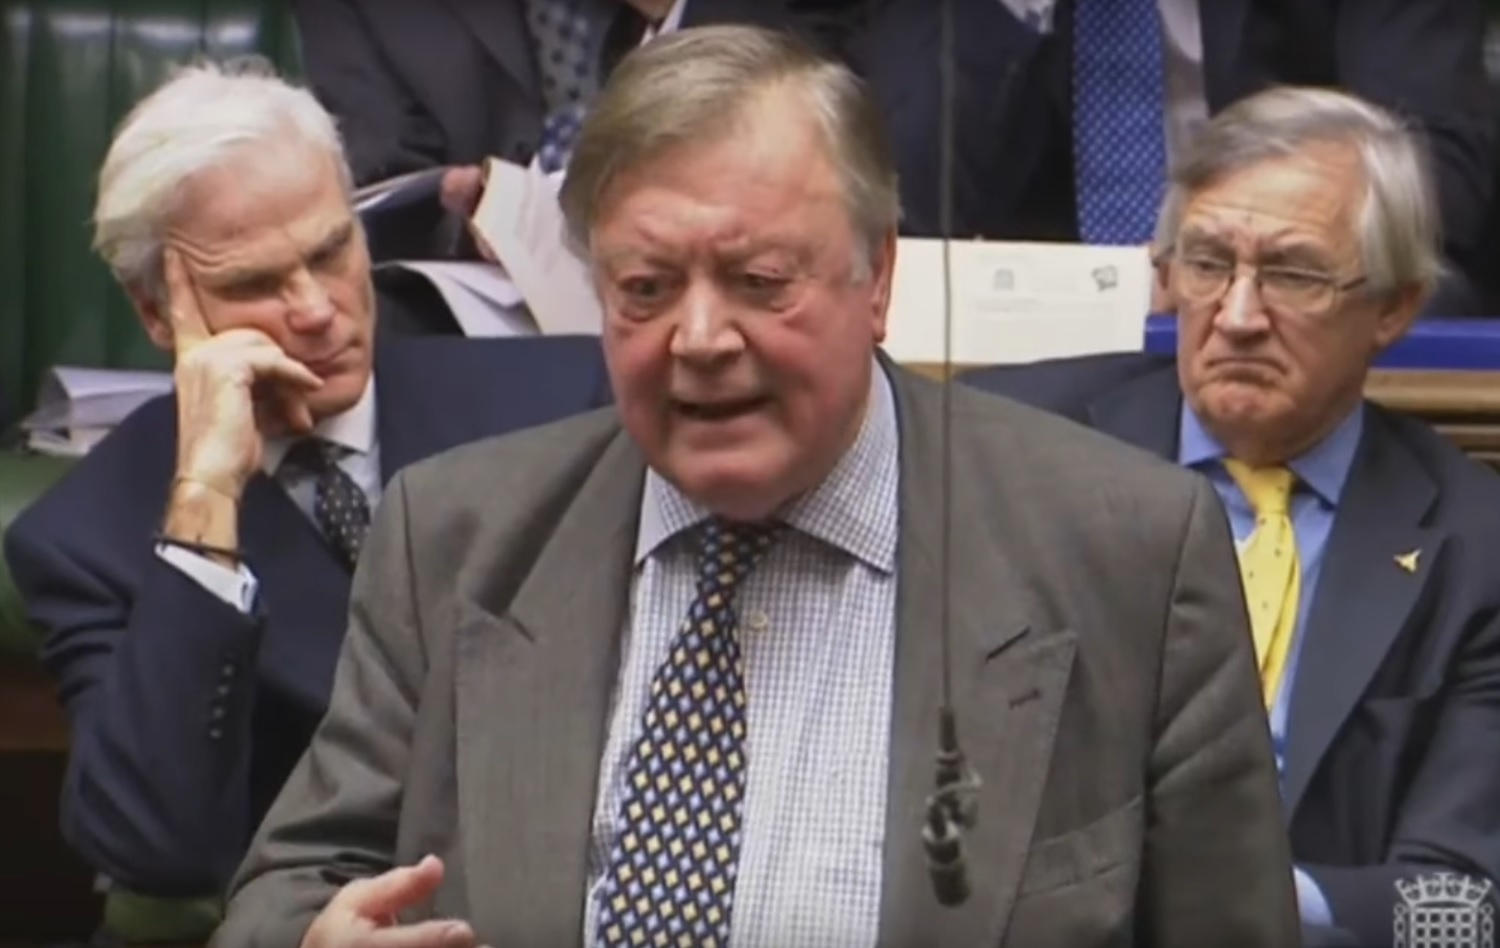 Ken Clarke Conservative MP